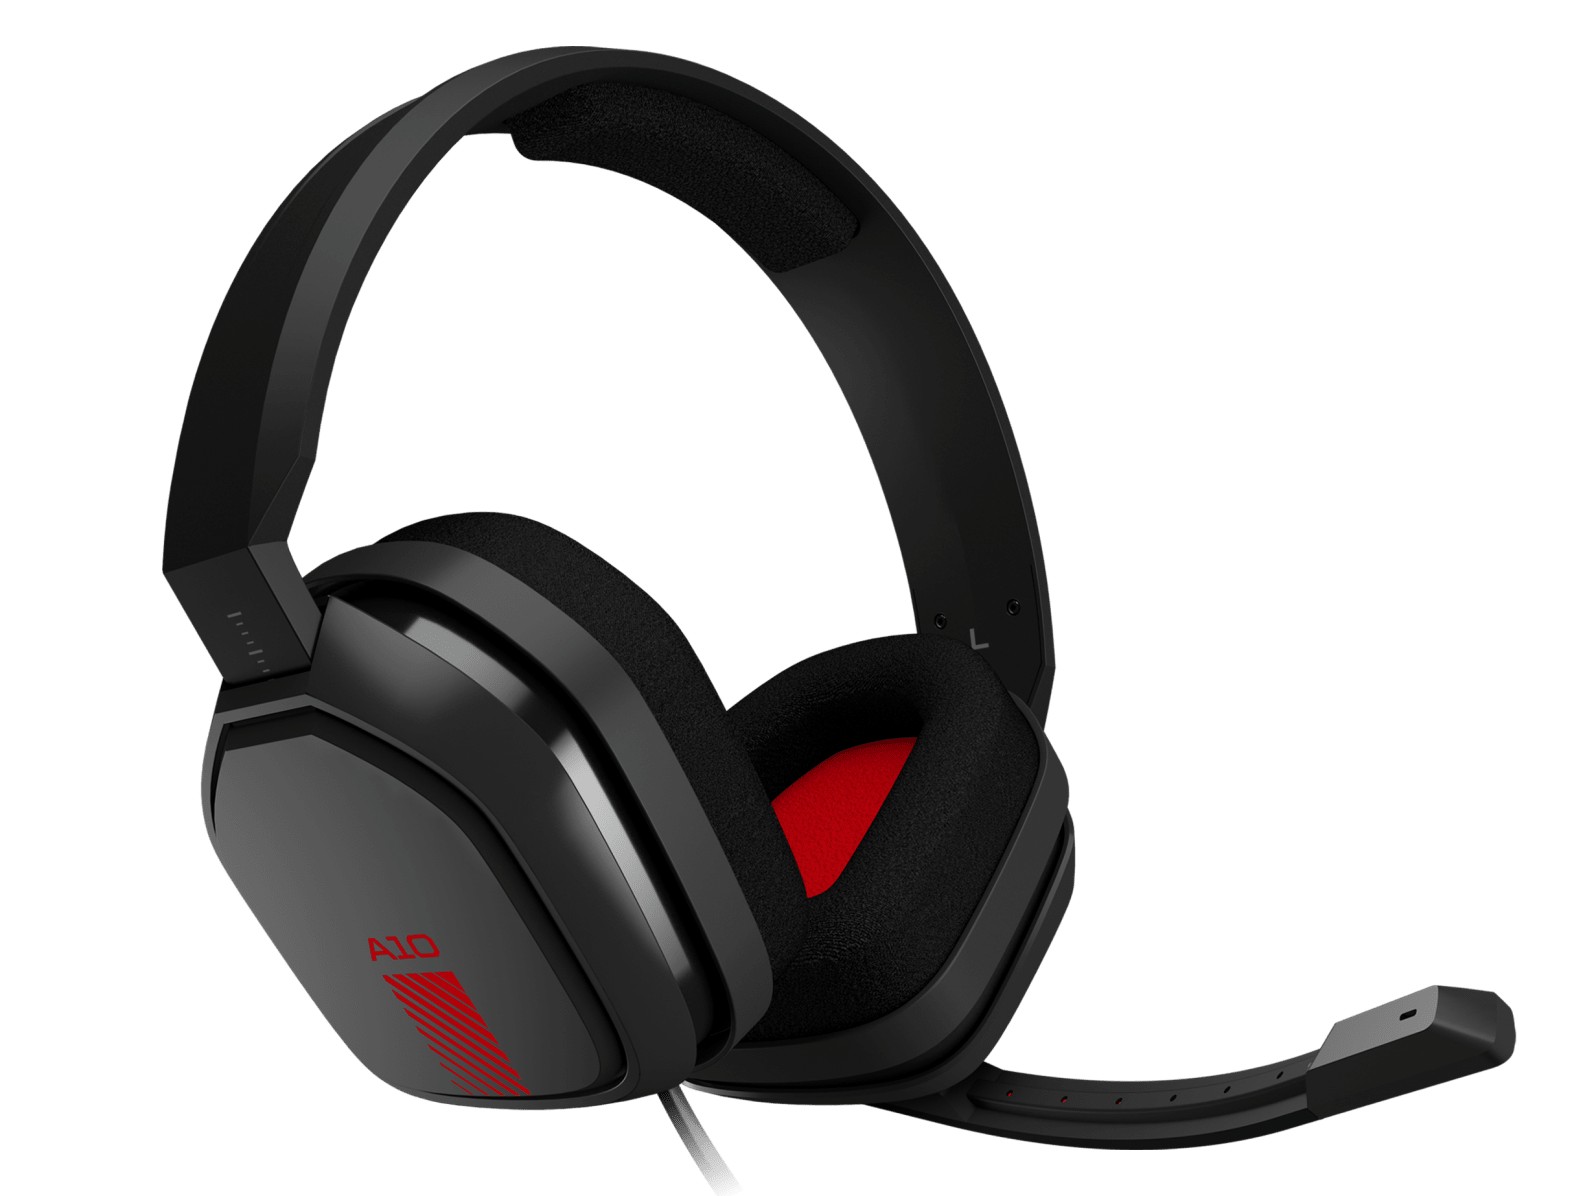 The Astro Wired Headset